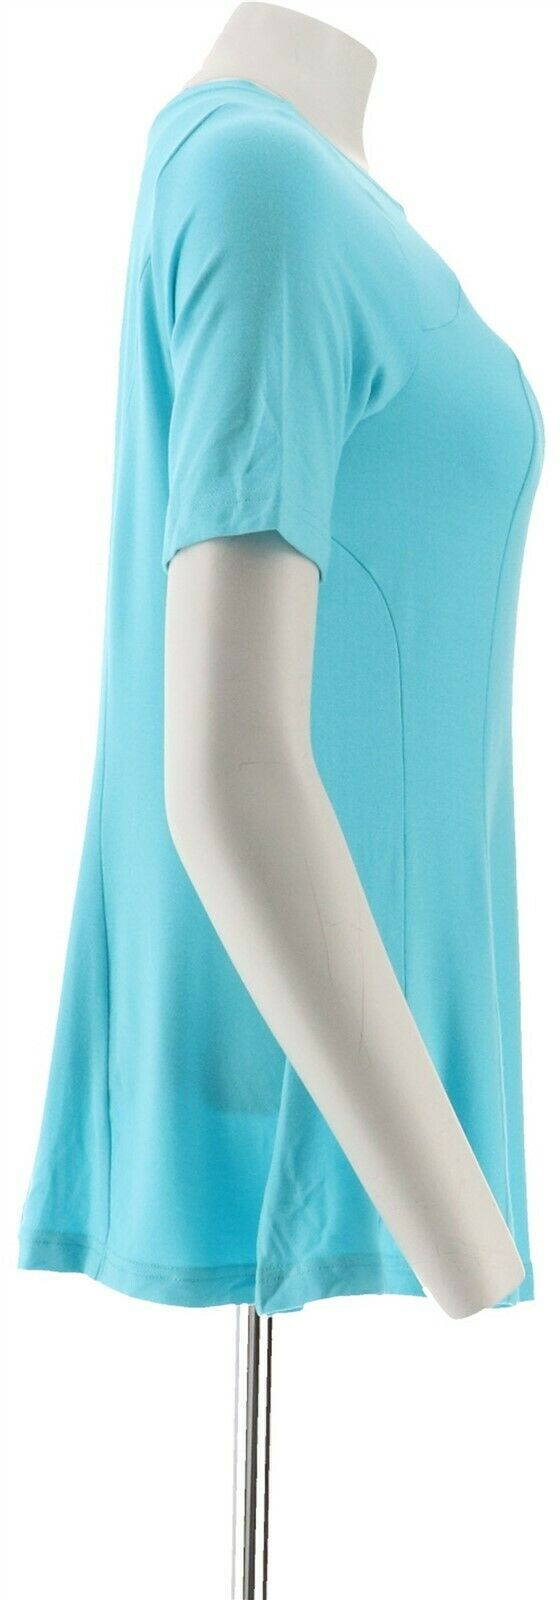 Belle Kim Gravel Essential Fit Flare Top Turquoise XL NEW A306976